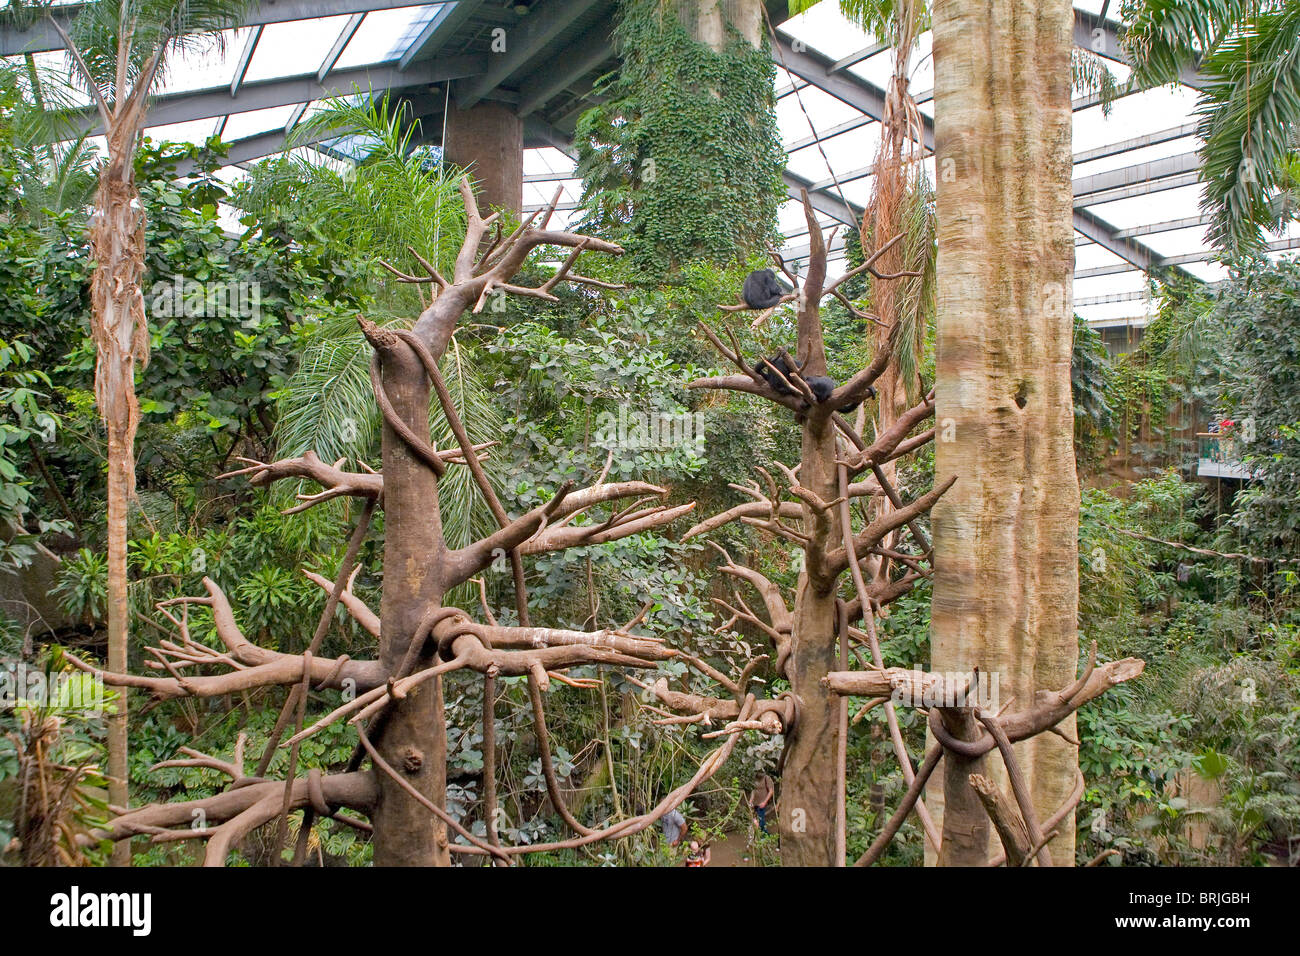 Henry Doorly Zoo Jungle - menti Photo Stock